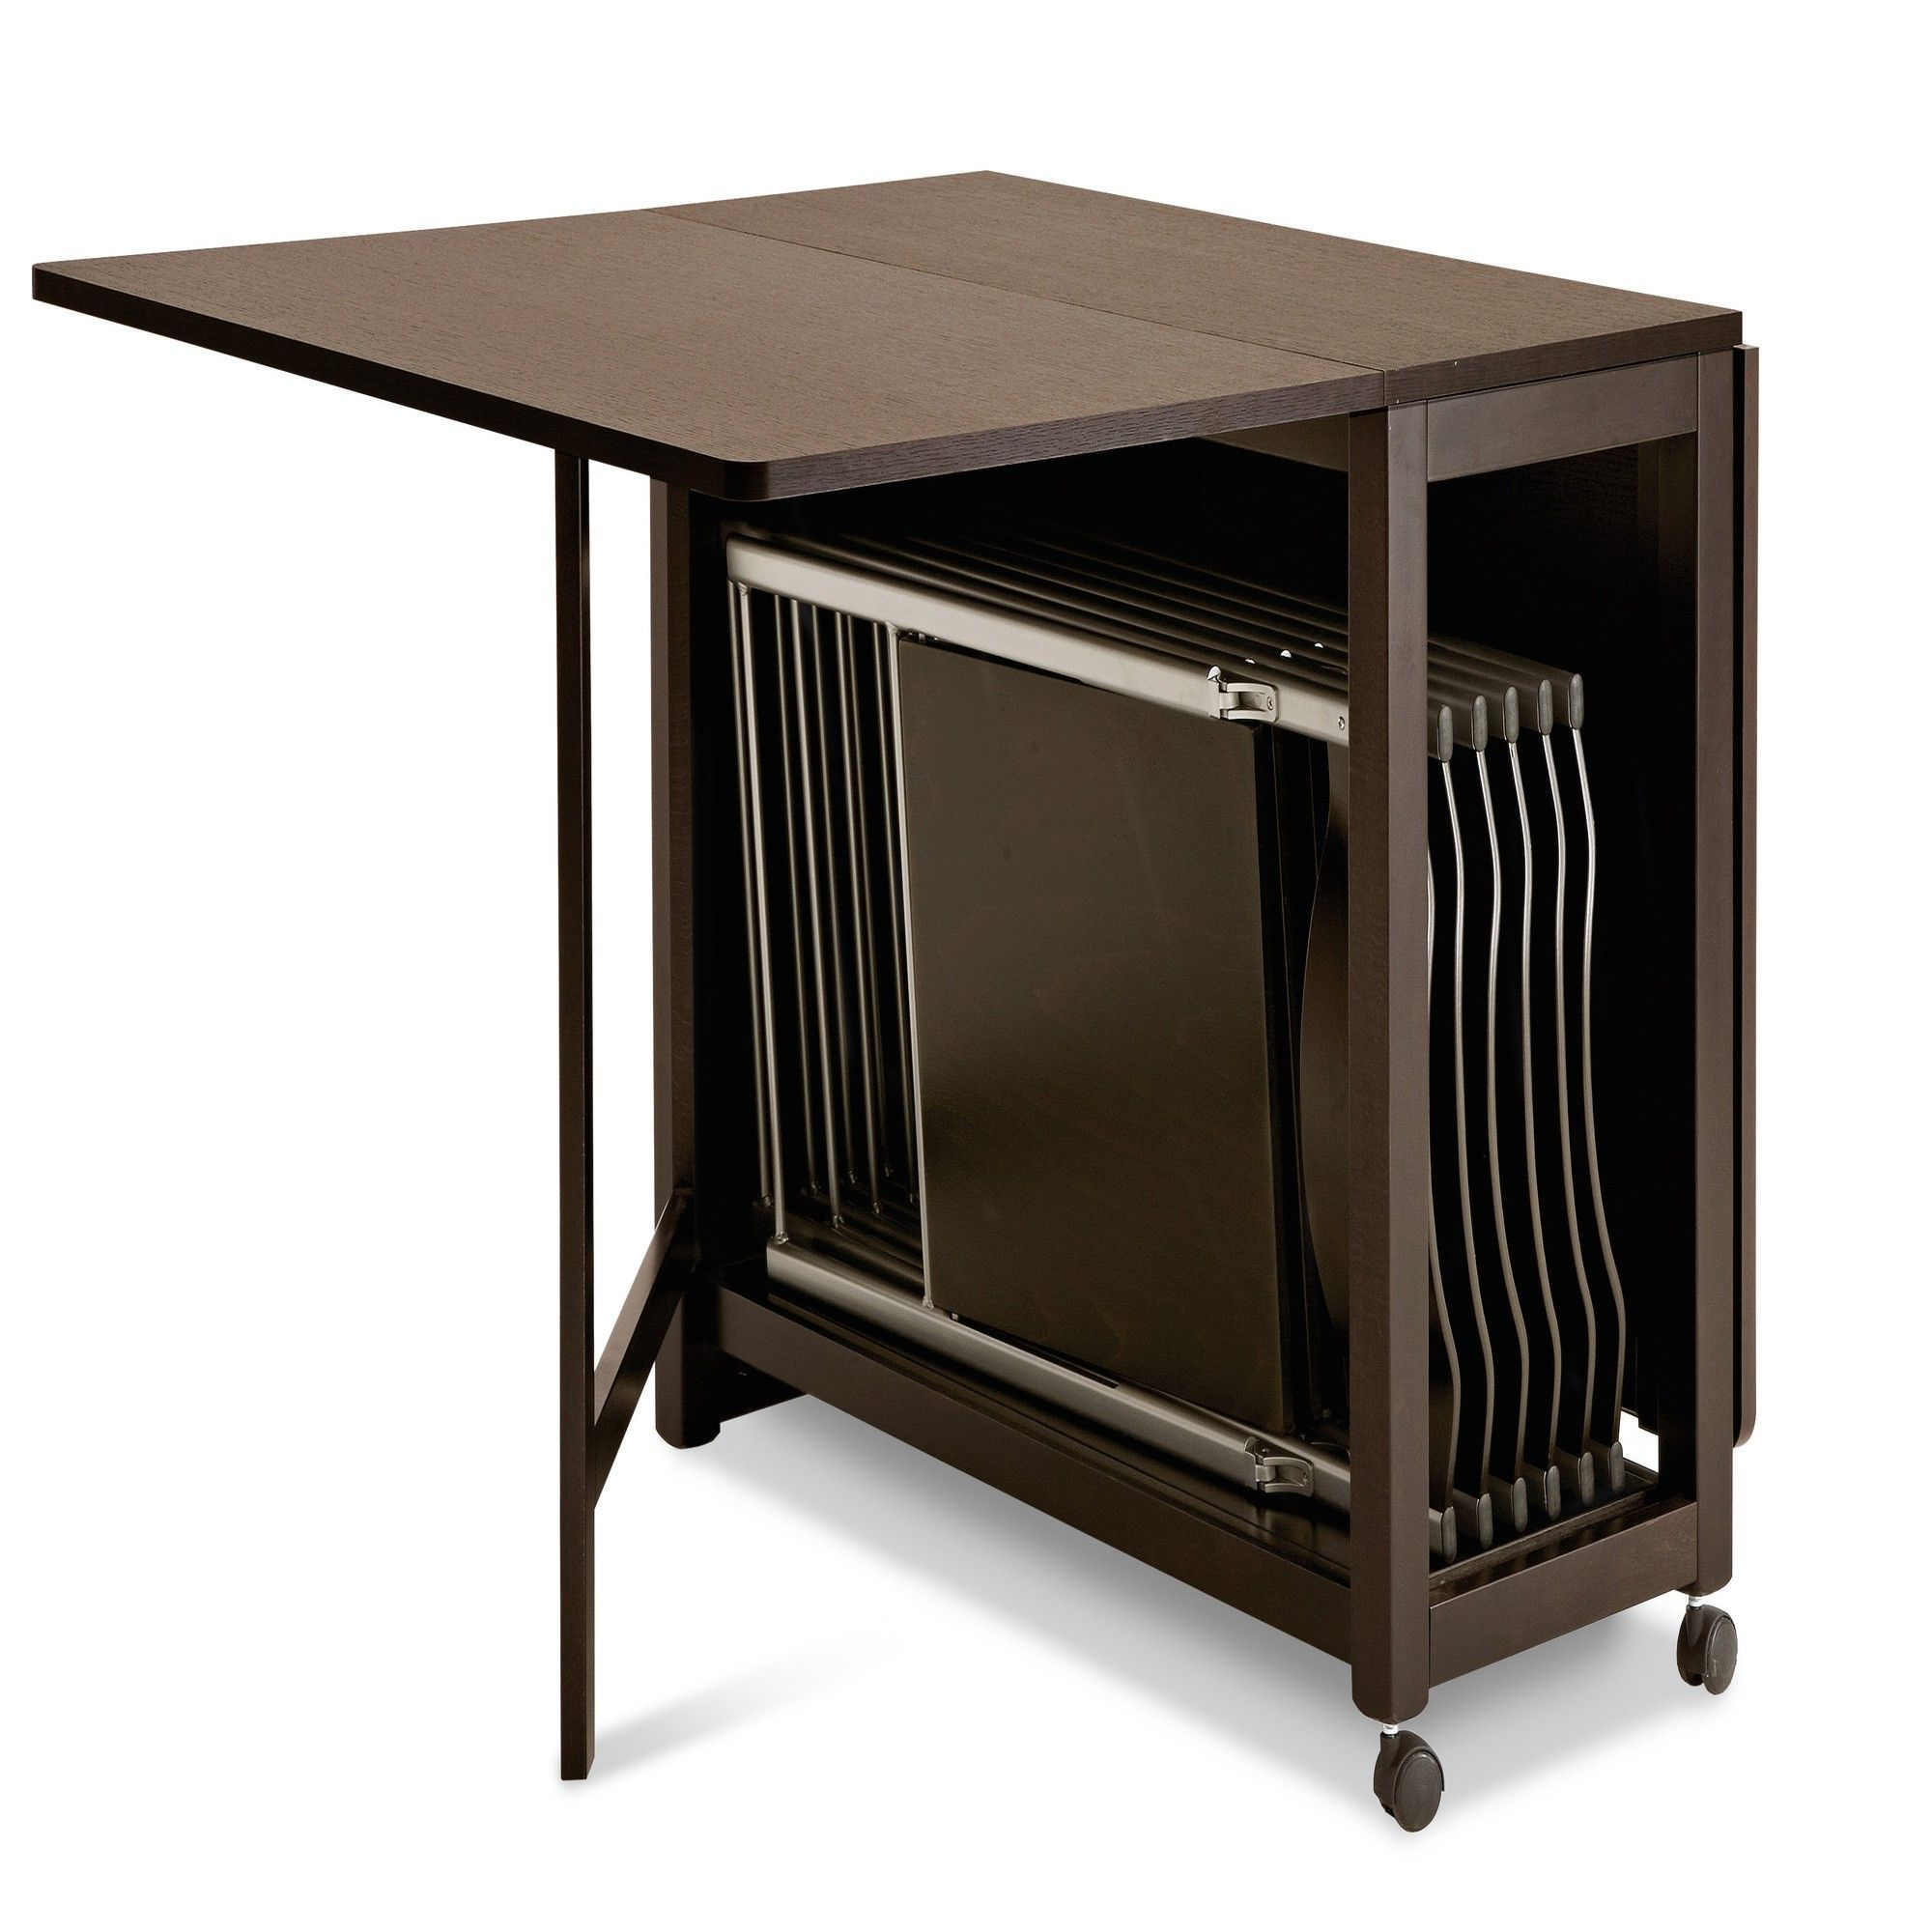 Kitchen Table Storage Bar Stools Ikea Unique Fold Away Dining Inspirational Room Ideas With Chair Under